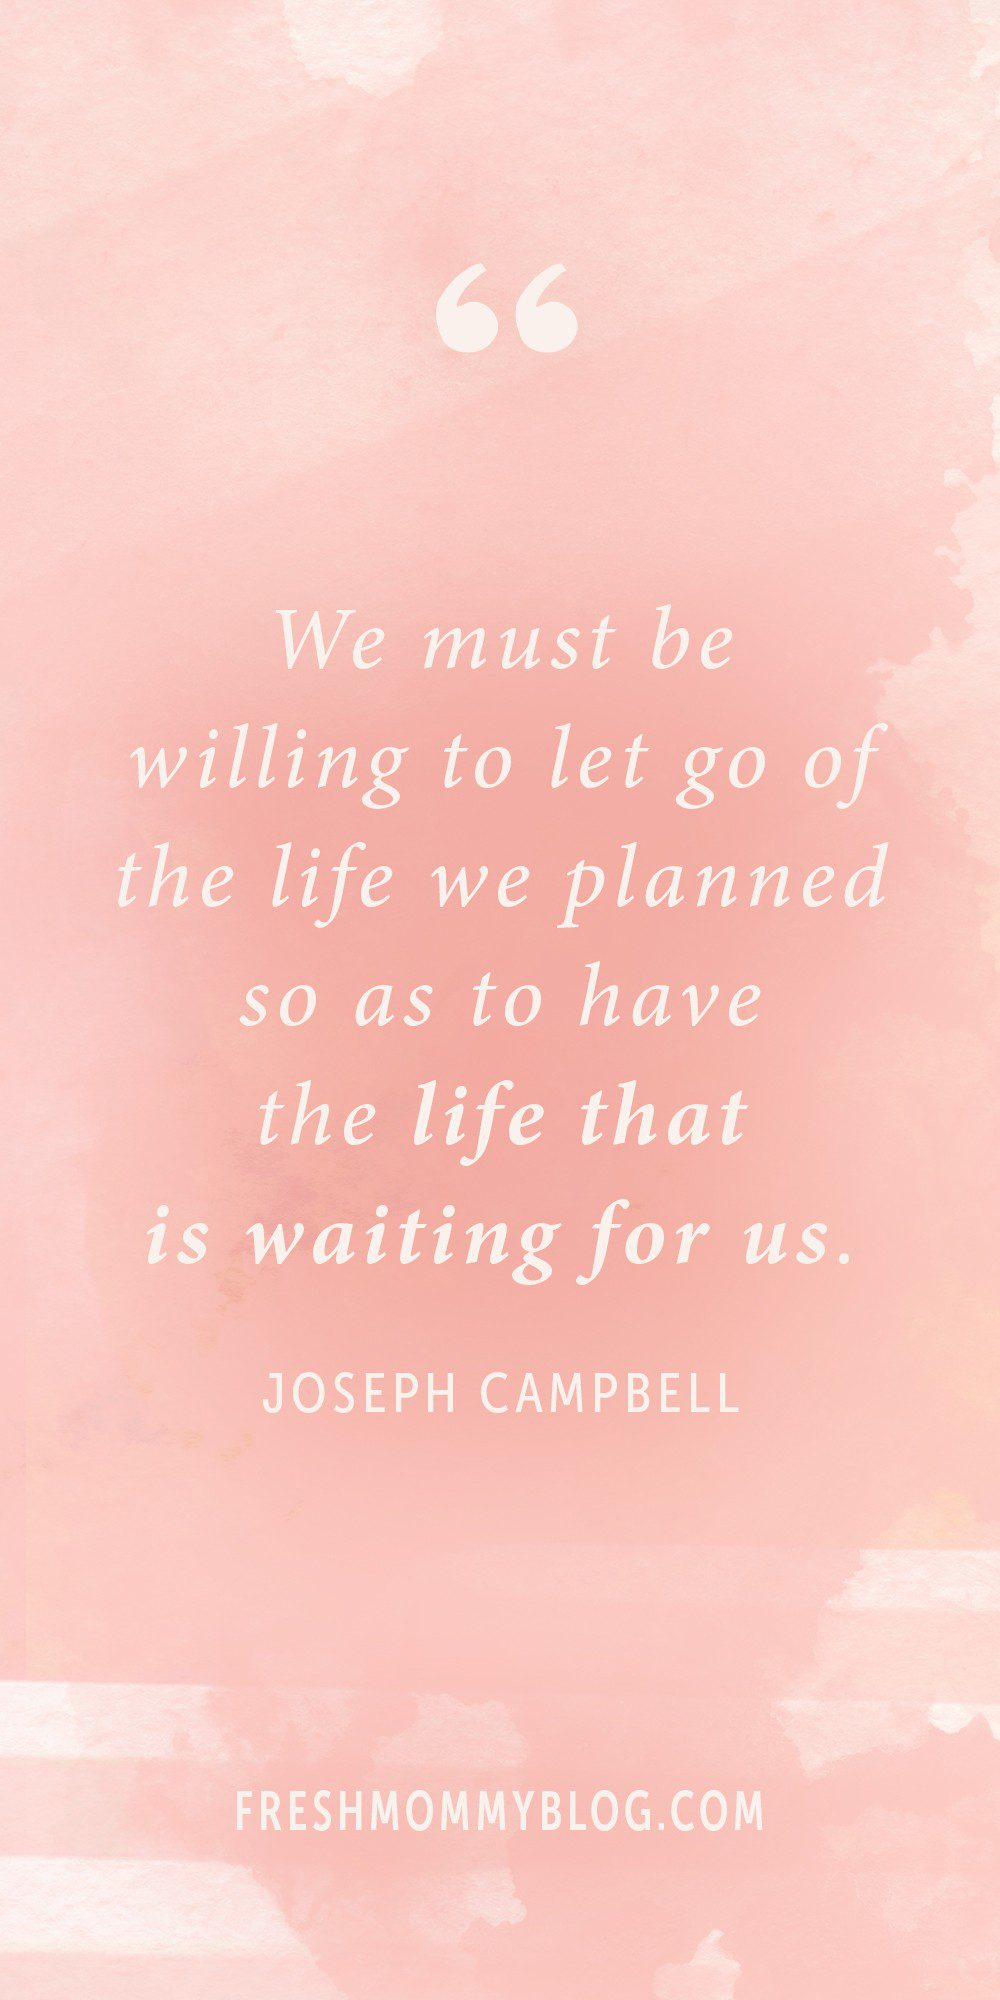 """We must be willing to let go of the life we planned so as to have the life that is waiting for us."" Joseph Campbell 